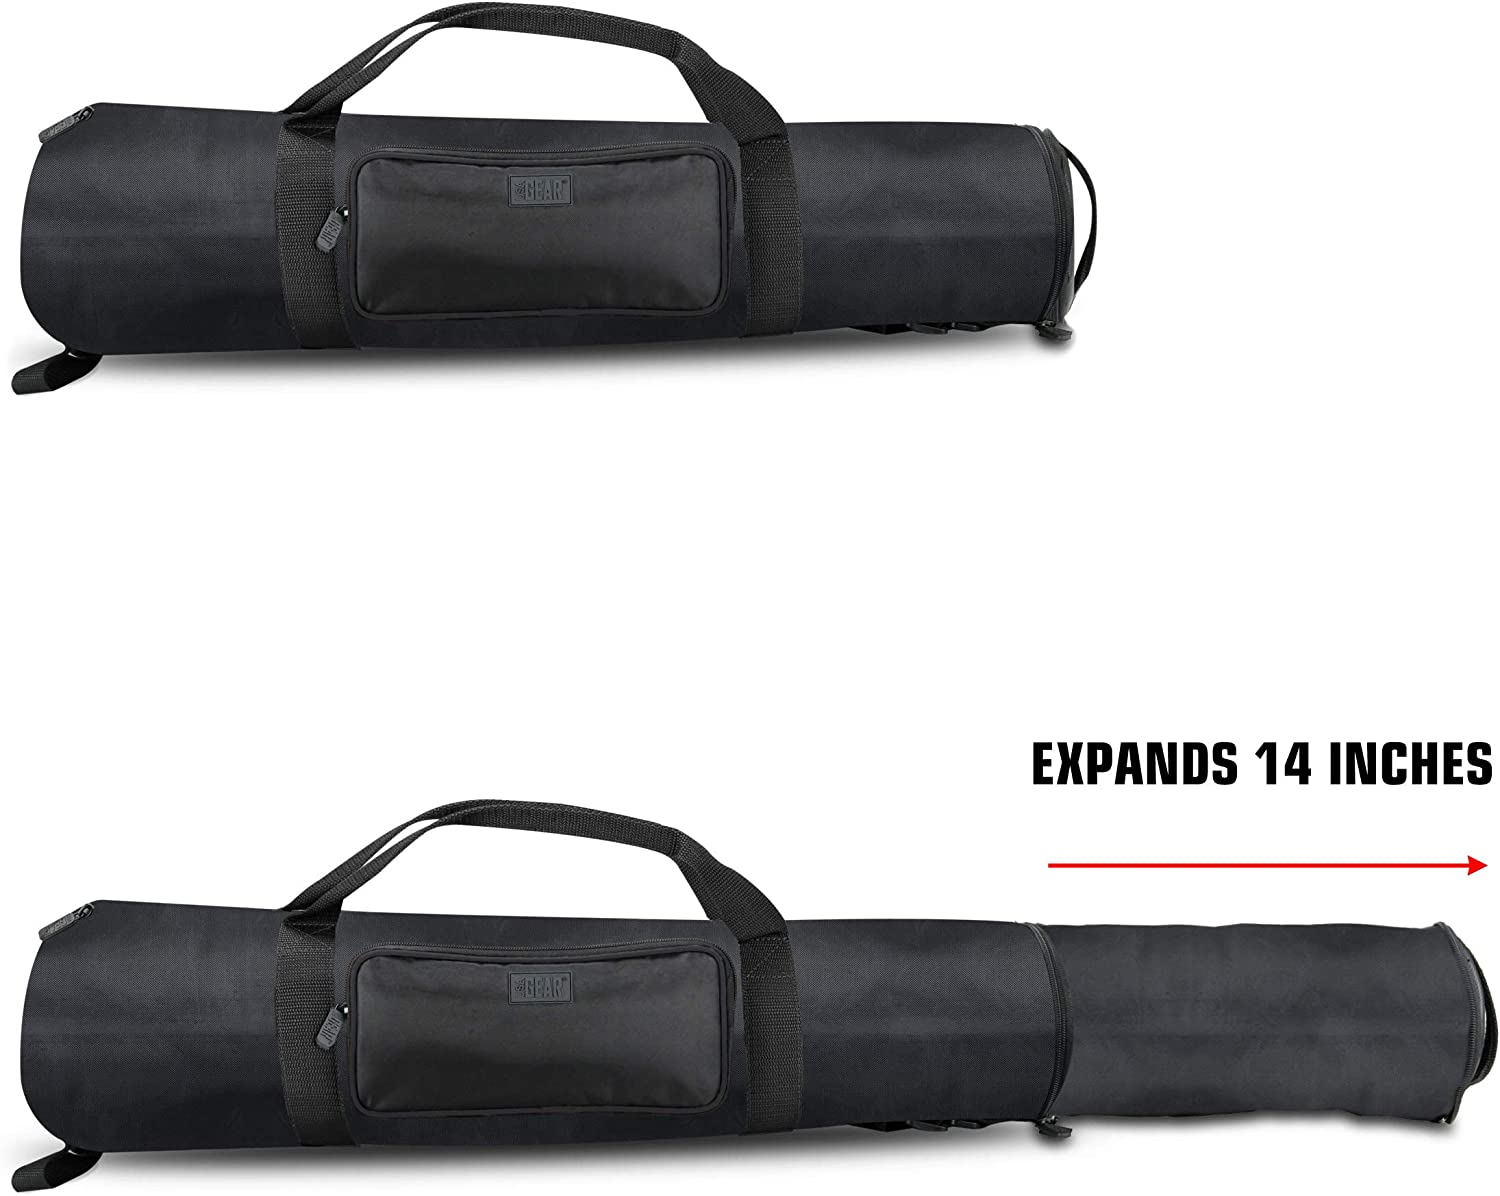 Adjustable Size Extension - Holds Tripods from 21 to 35 inches USA Gear Padded Tripod Case Bag Storage Pocket and Shoulder Strap for Professional Camera Accessories and Photo Carrying Needs Black